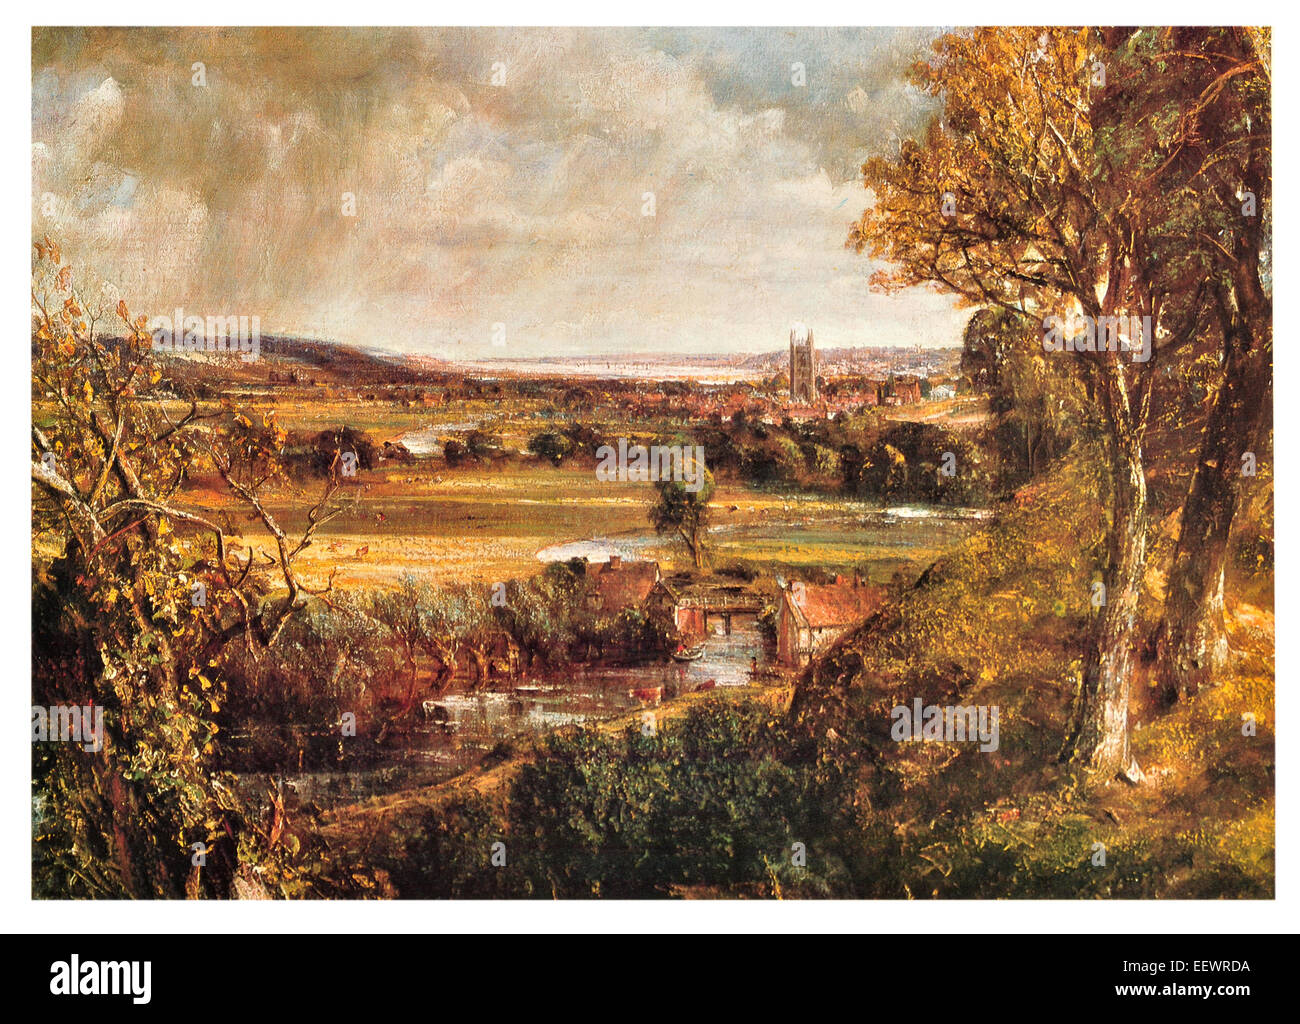 Dedham Vale John Constable Area of Outstanding Natural Beauty  Essex Suffolk east England River Stour 1802 cathedral Stock Photo